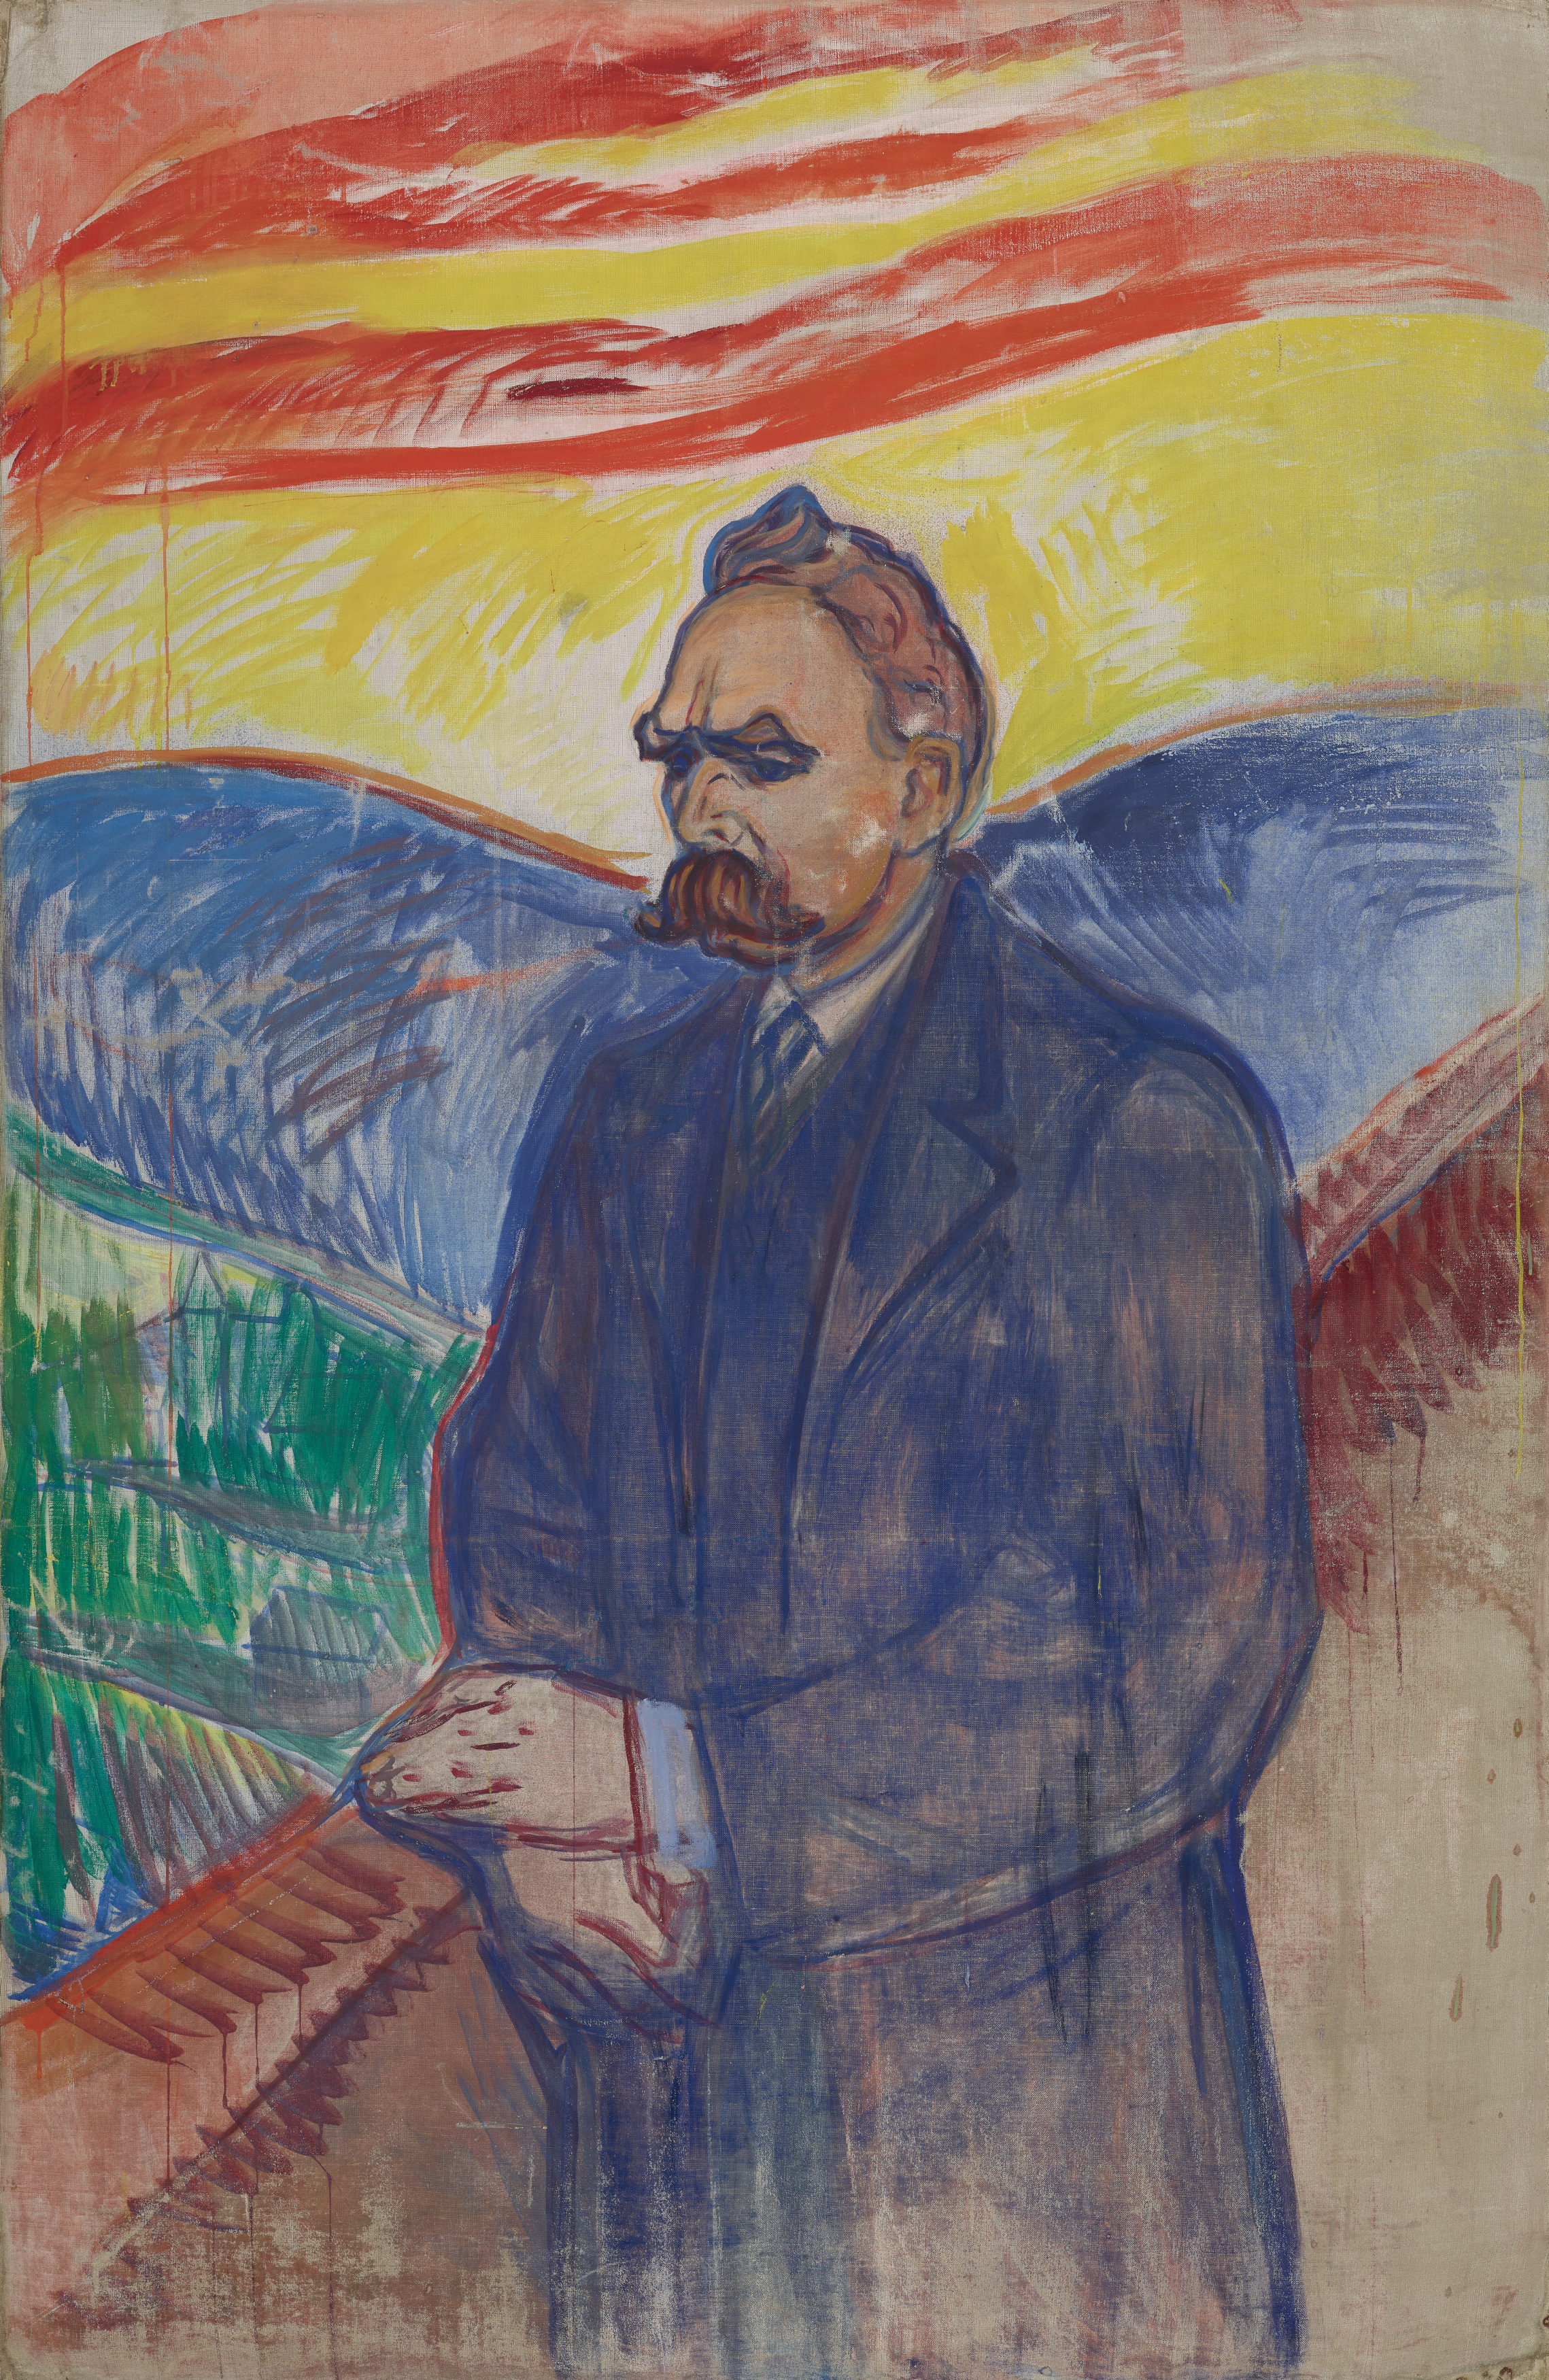 Edvard Munch: Friedrich Nietzsche. Oil and tempera on canvas, 1906. Photo © Munchmuseet